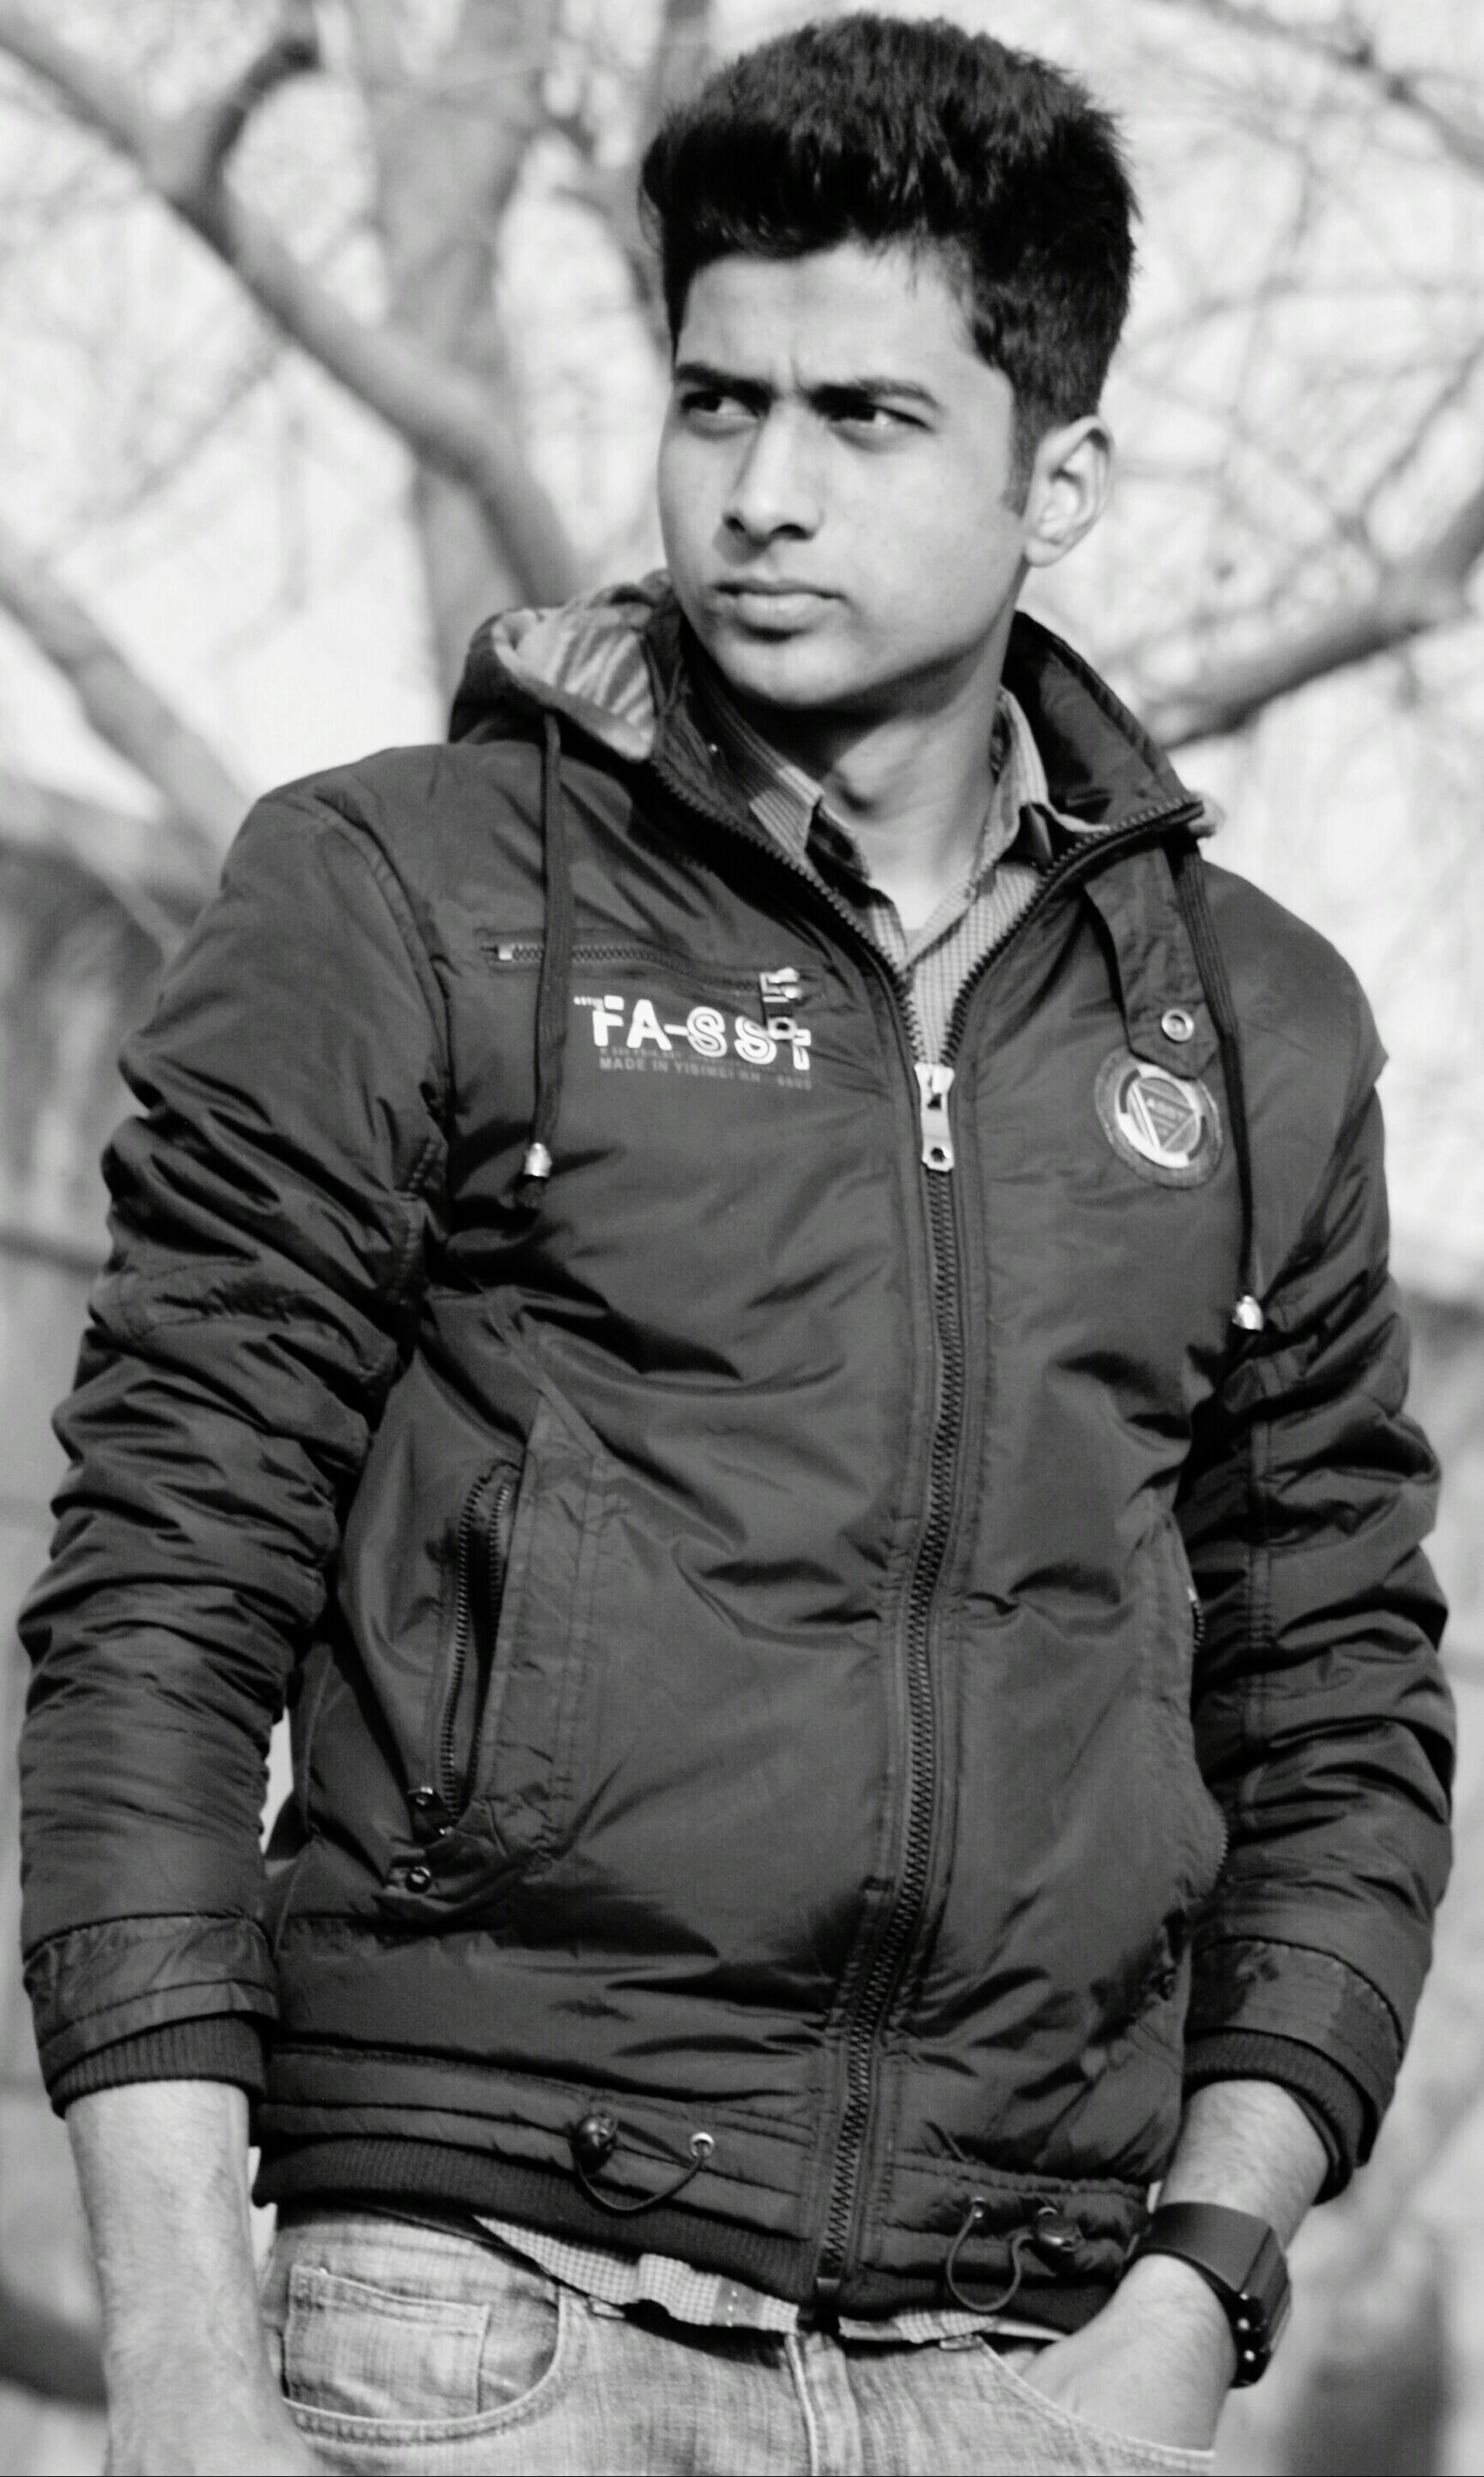 person, casual clothing, lifestyles, young adult, front view, leisure activity, portrait, looking at camera, focus on foreground, three quarter length, young men, standing, jacket, waist up, holding, smiling, warm clothing